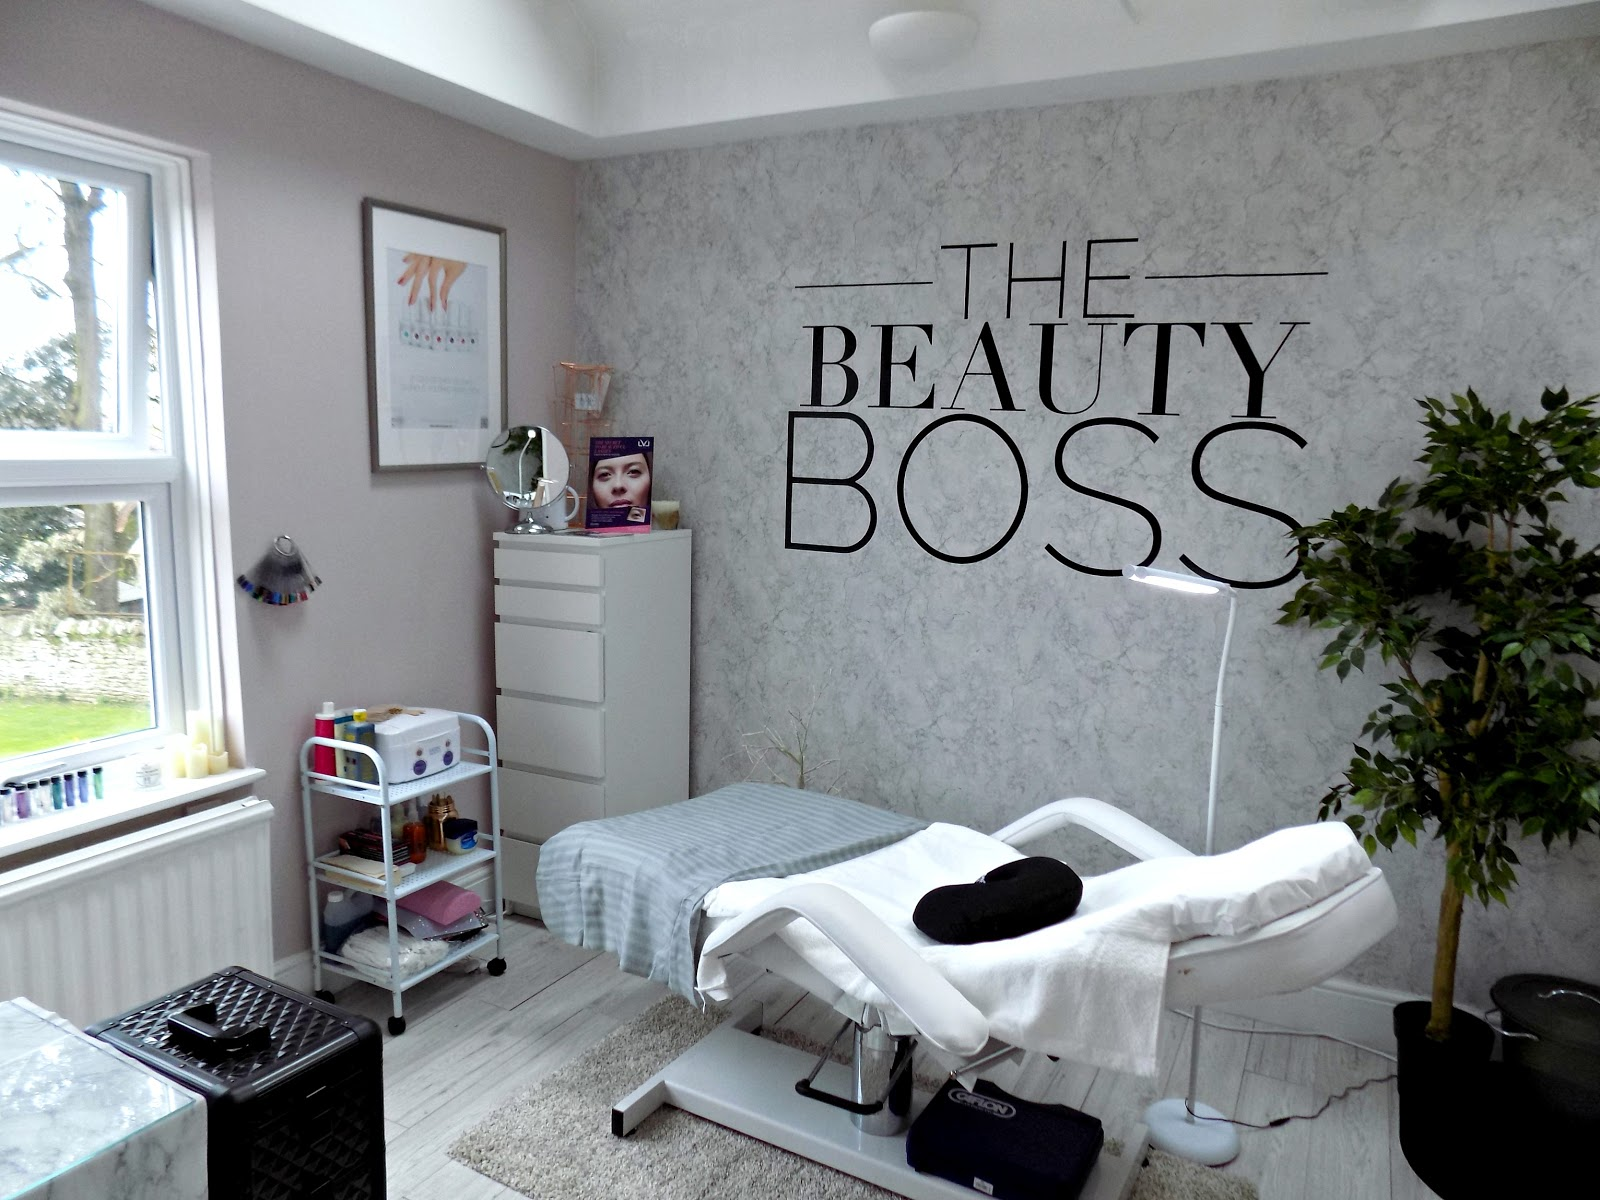 The Beauty Boss salon in Swindon, LVL treatment